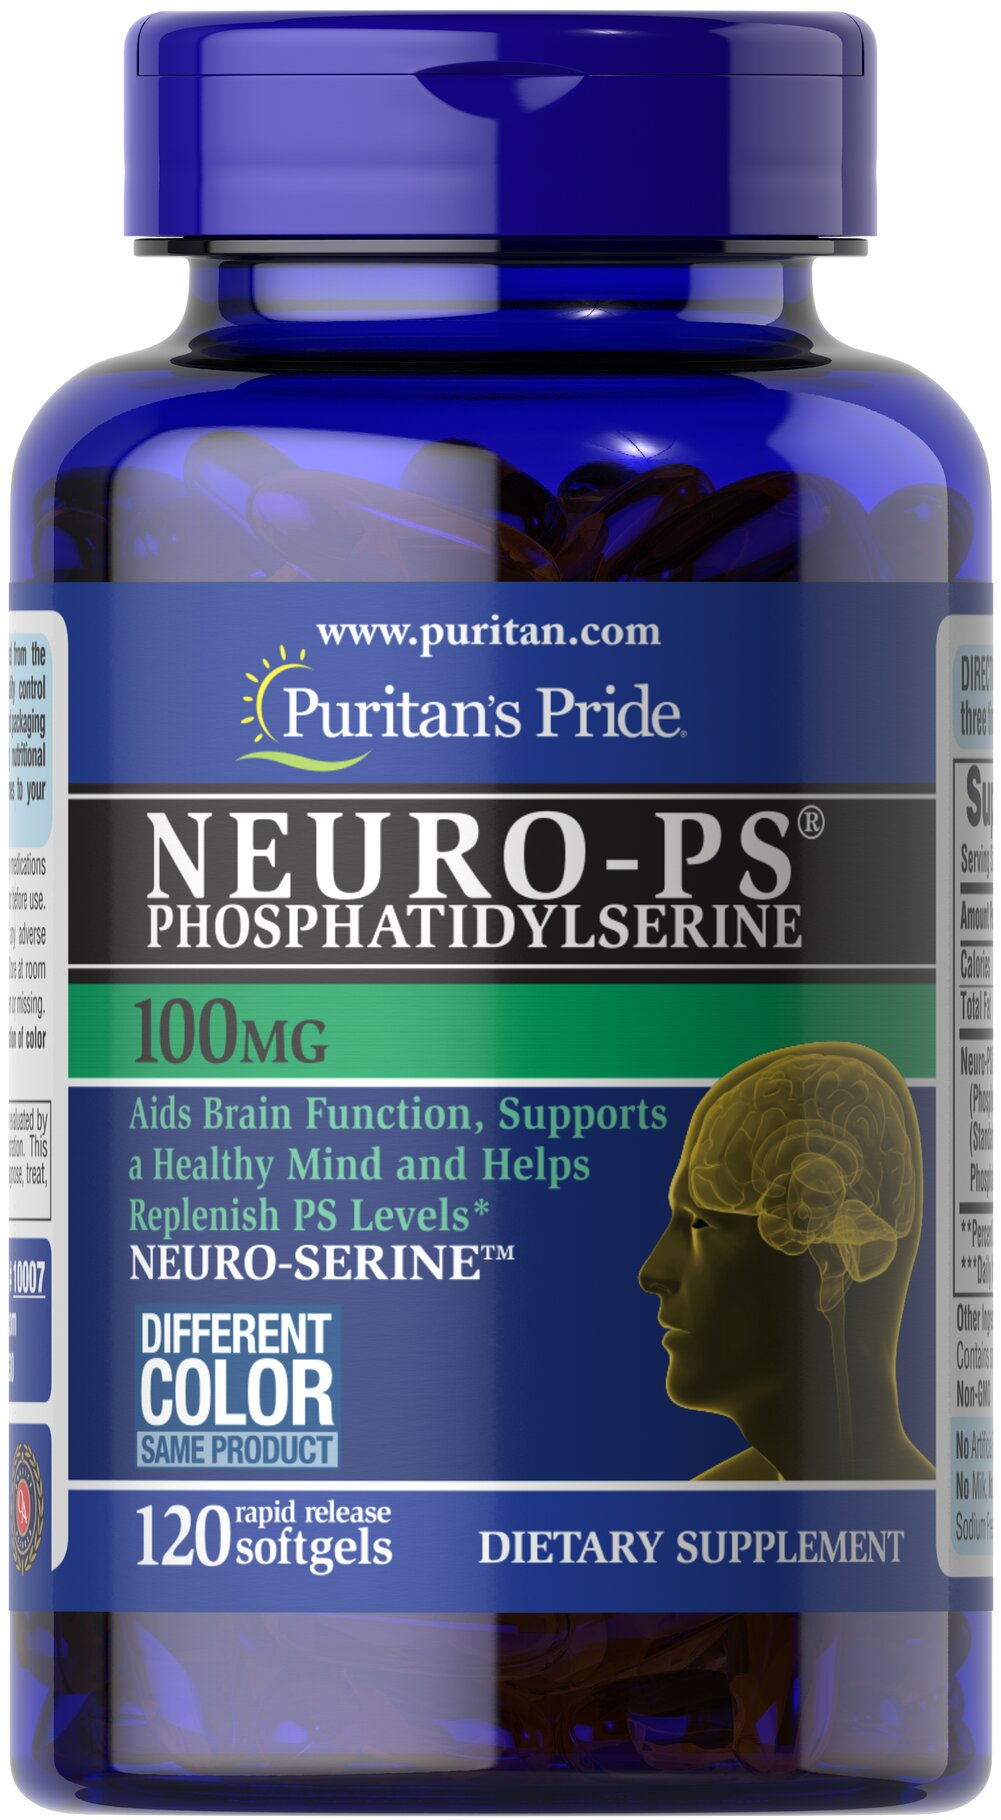 Neuro-Ps (Phosphatidylserine) 100 mg  120 Softgels 100 mg $66.99